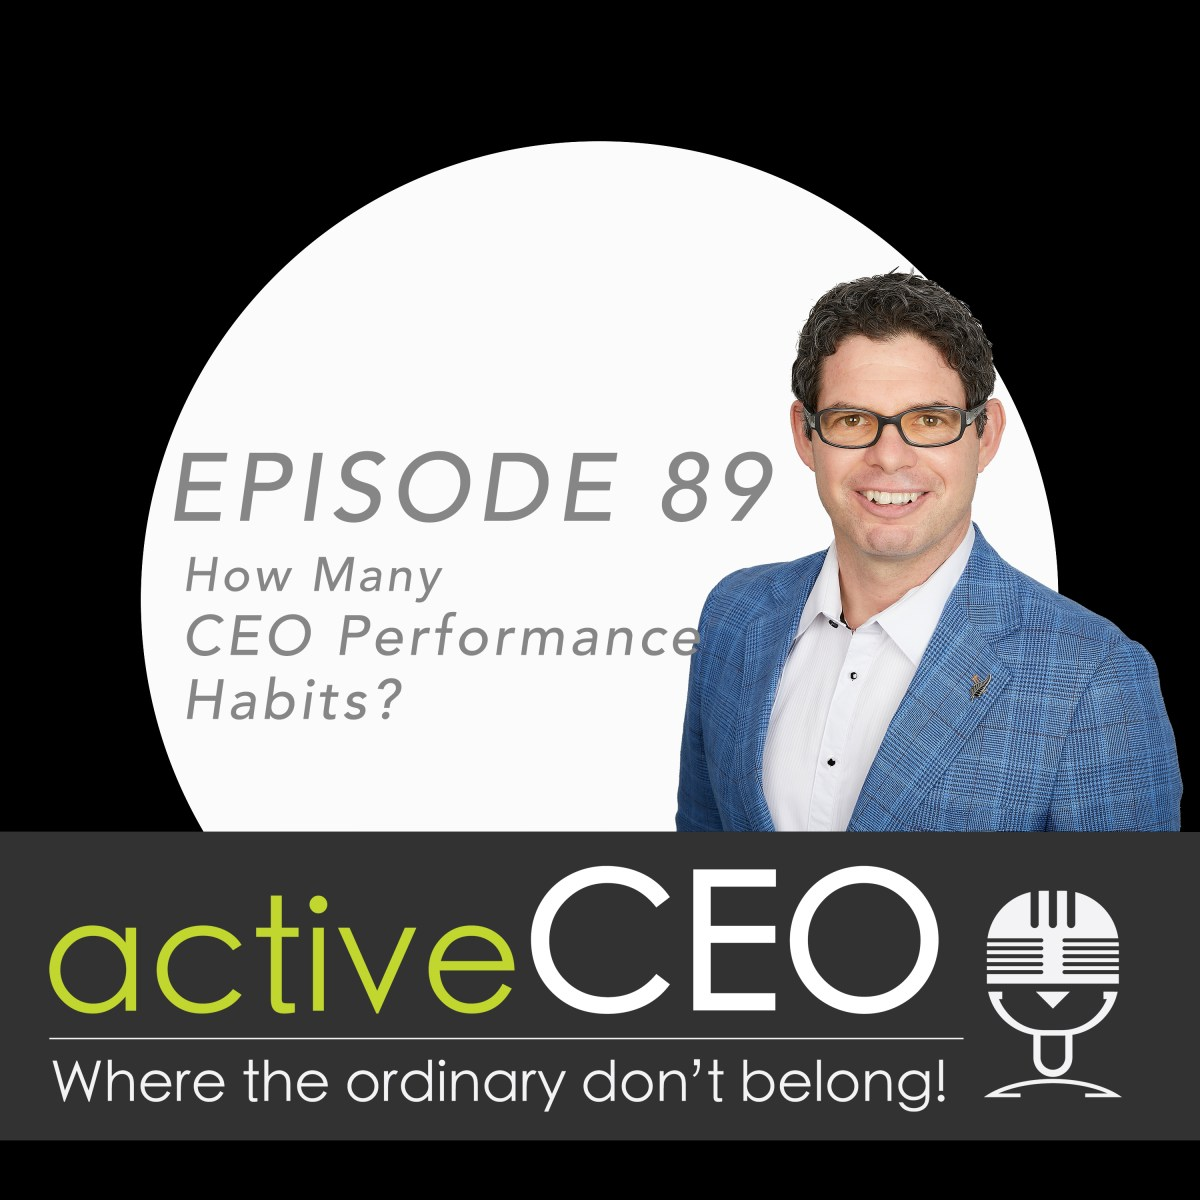 CEO Performance active CEO Podcast Breaking The CEO Code Craig Johns NRG2Perform High Performing Leaders